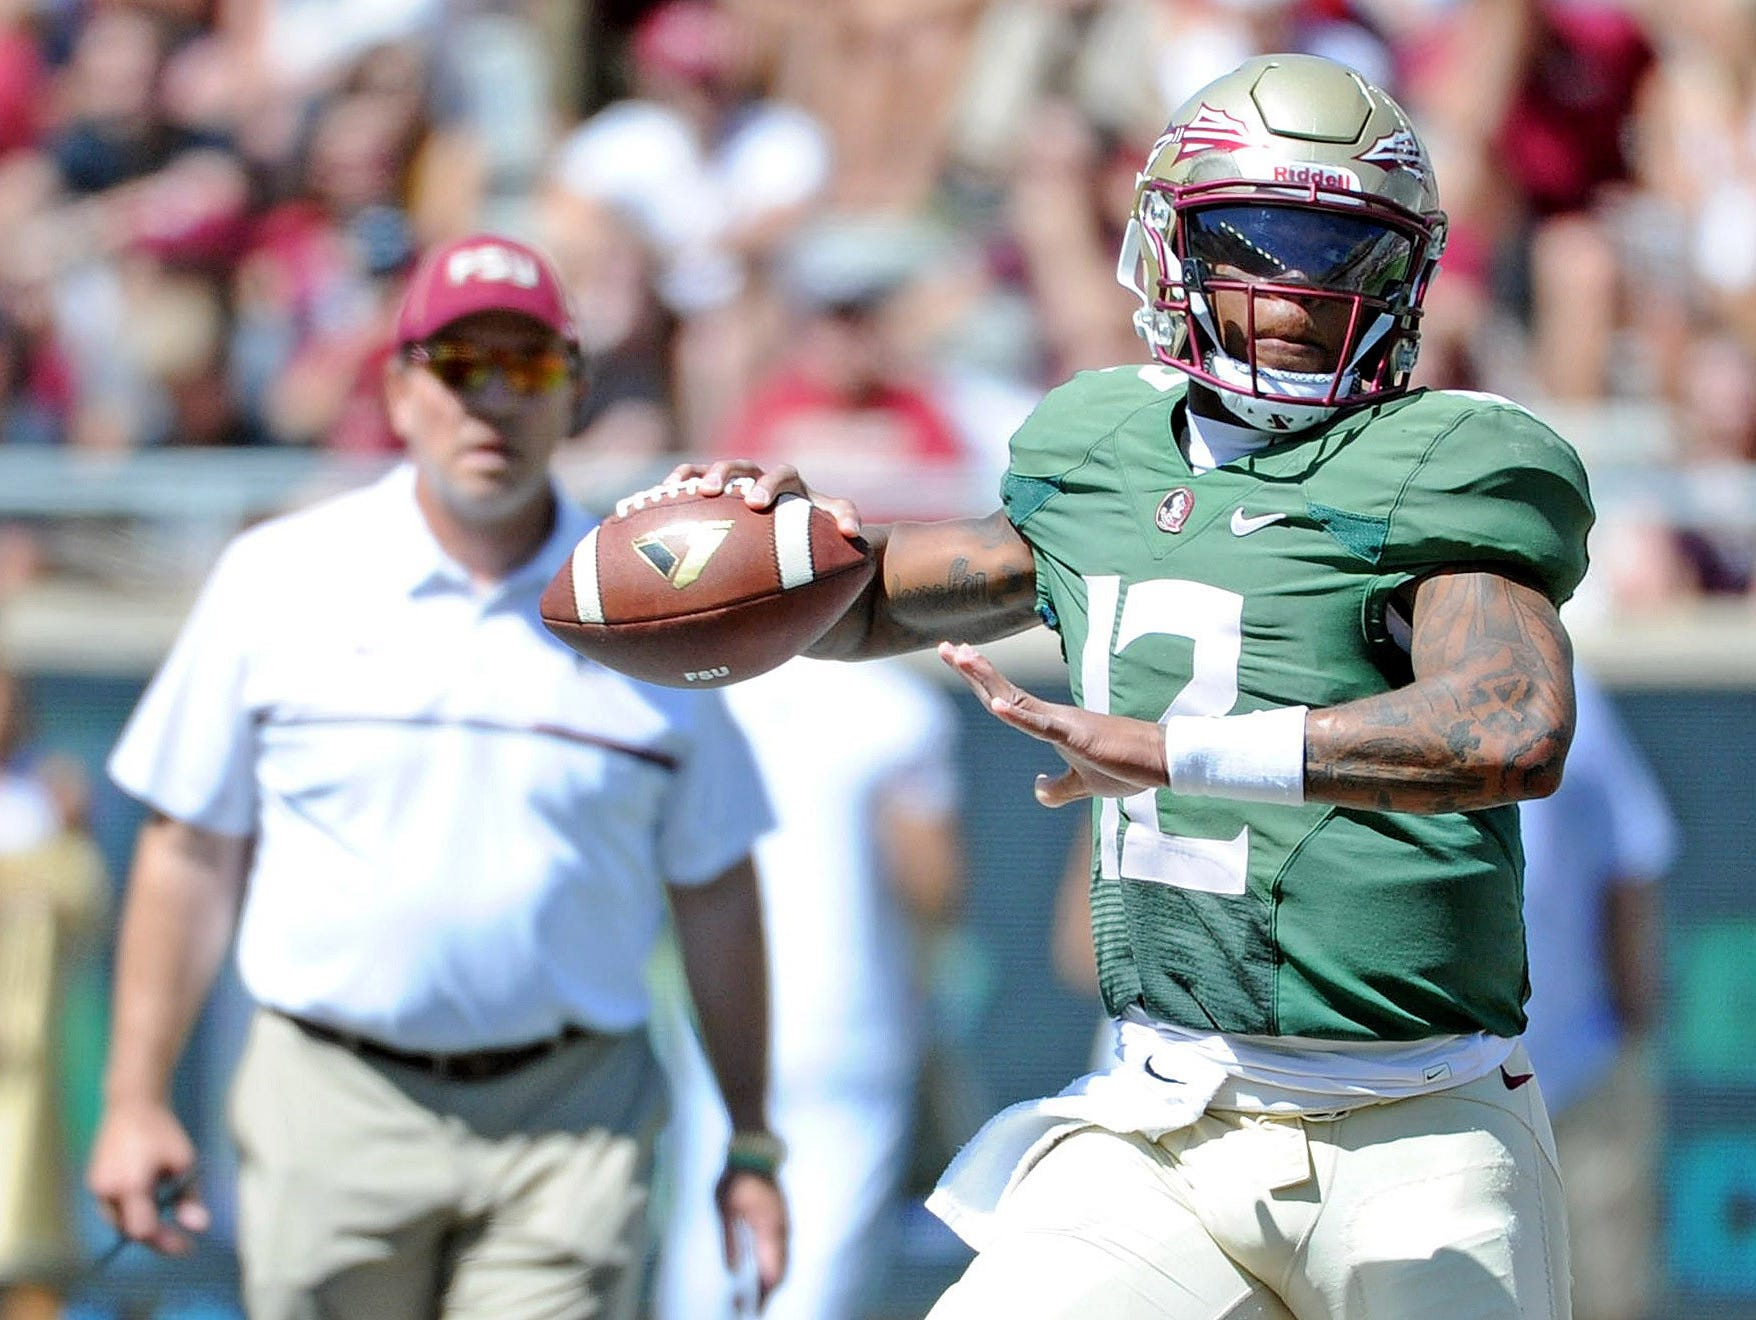 Apr 8, 2017; Tallahassee, FL, USA; Florida State Seminoles head coach Jimbo Fisher watches quarterback Deondre Francois (12) throw the ball during the Spring Game at Doak Campbell Stadium. Mandatory Credit: Melina Vastola-USA TODAY Sports